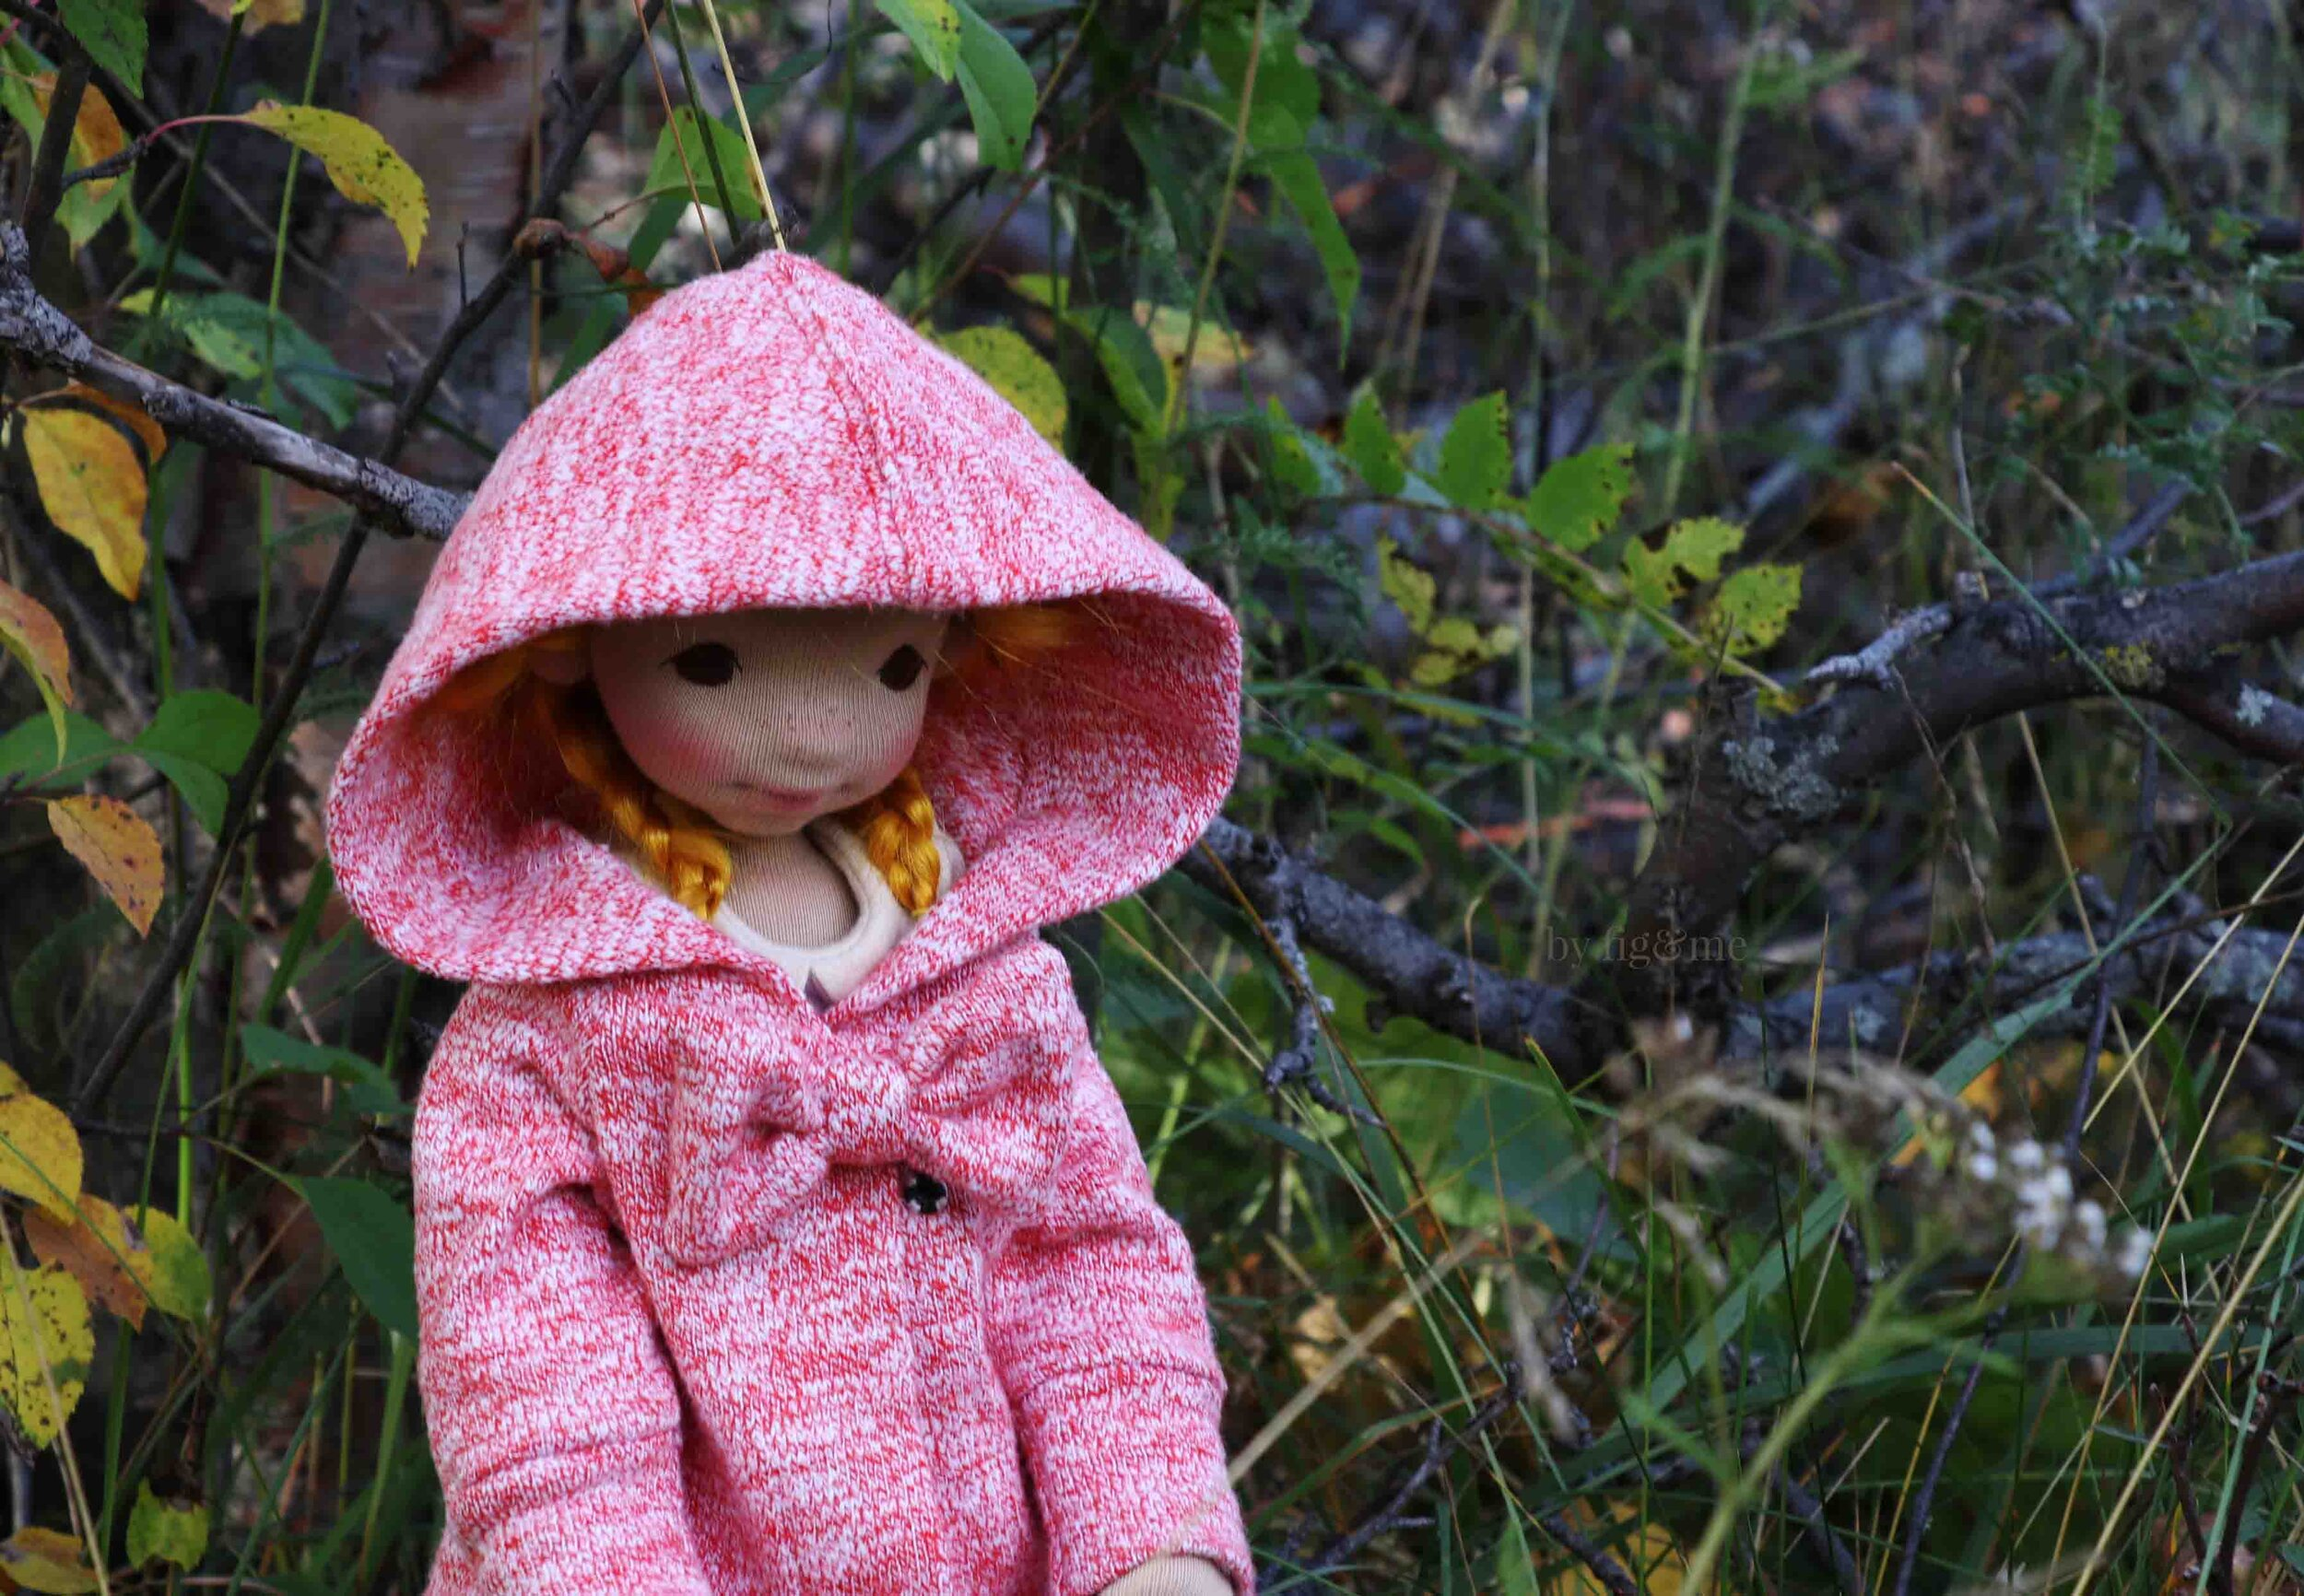 Beautiful fall doll hoodie, by fig and me